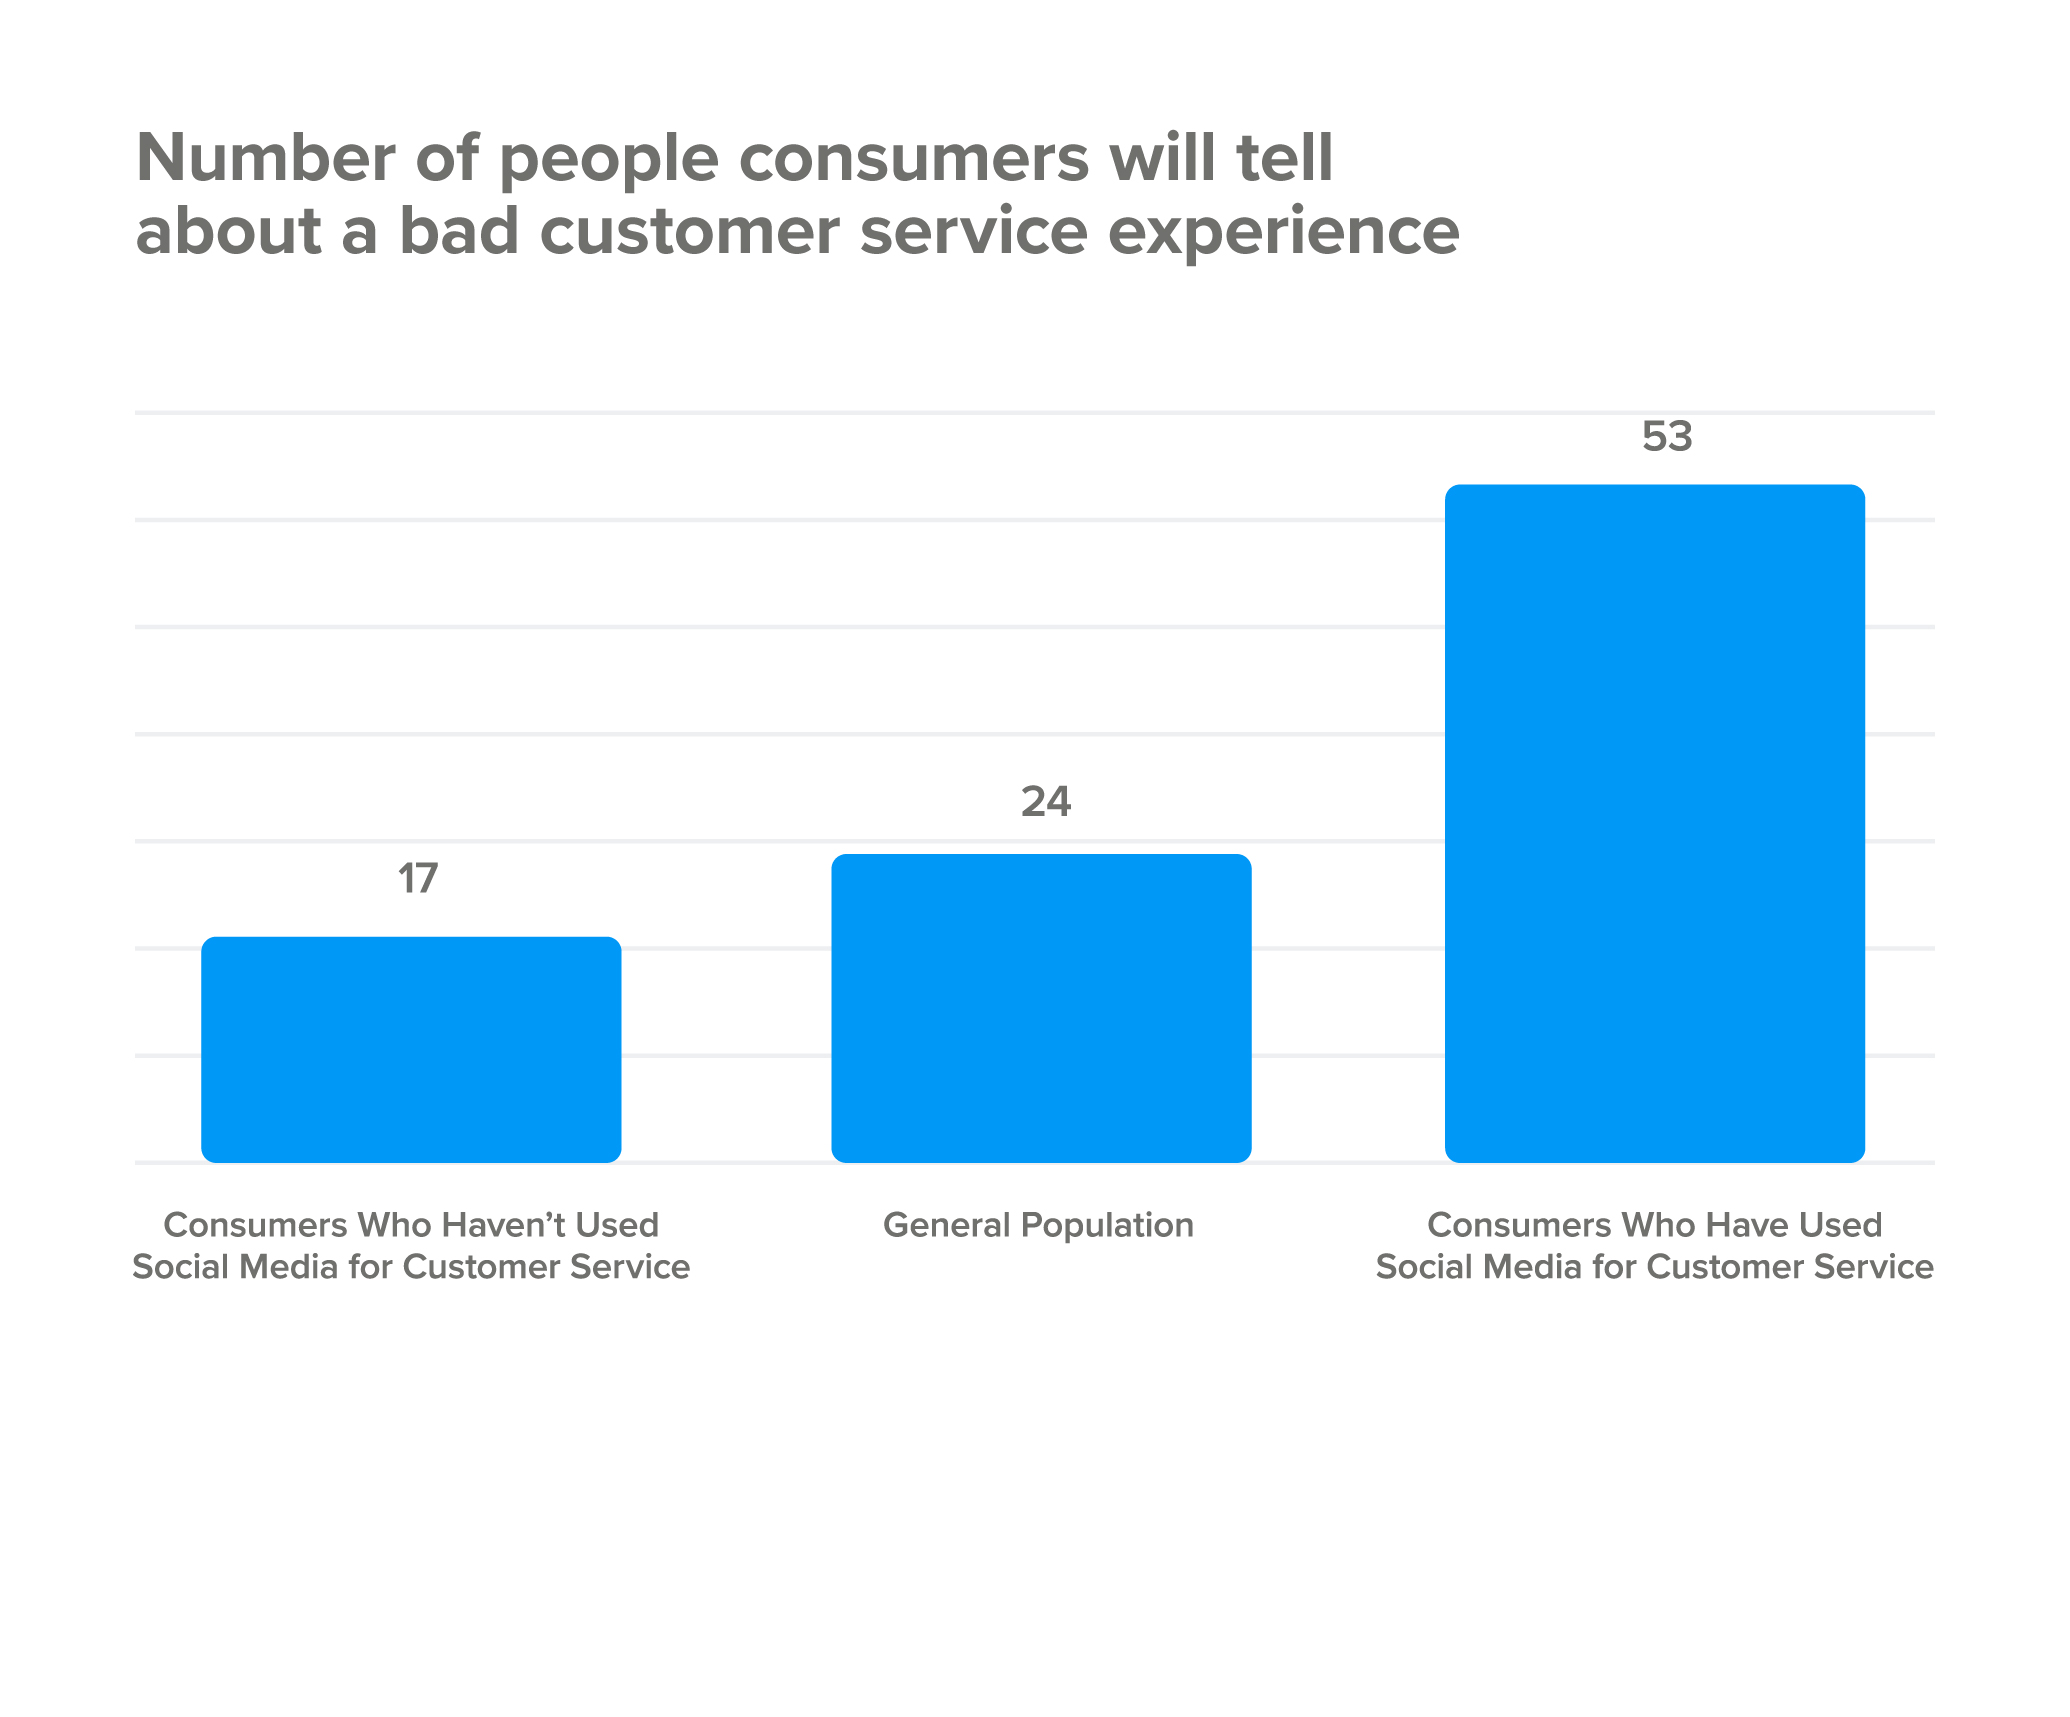 Number of people consumers will tell about a bad customer service experience